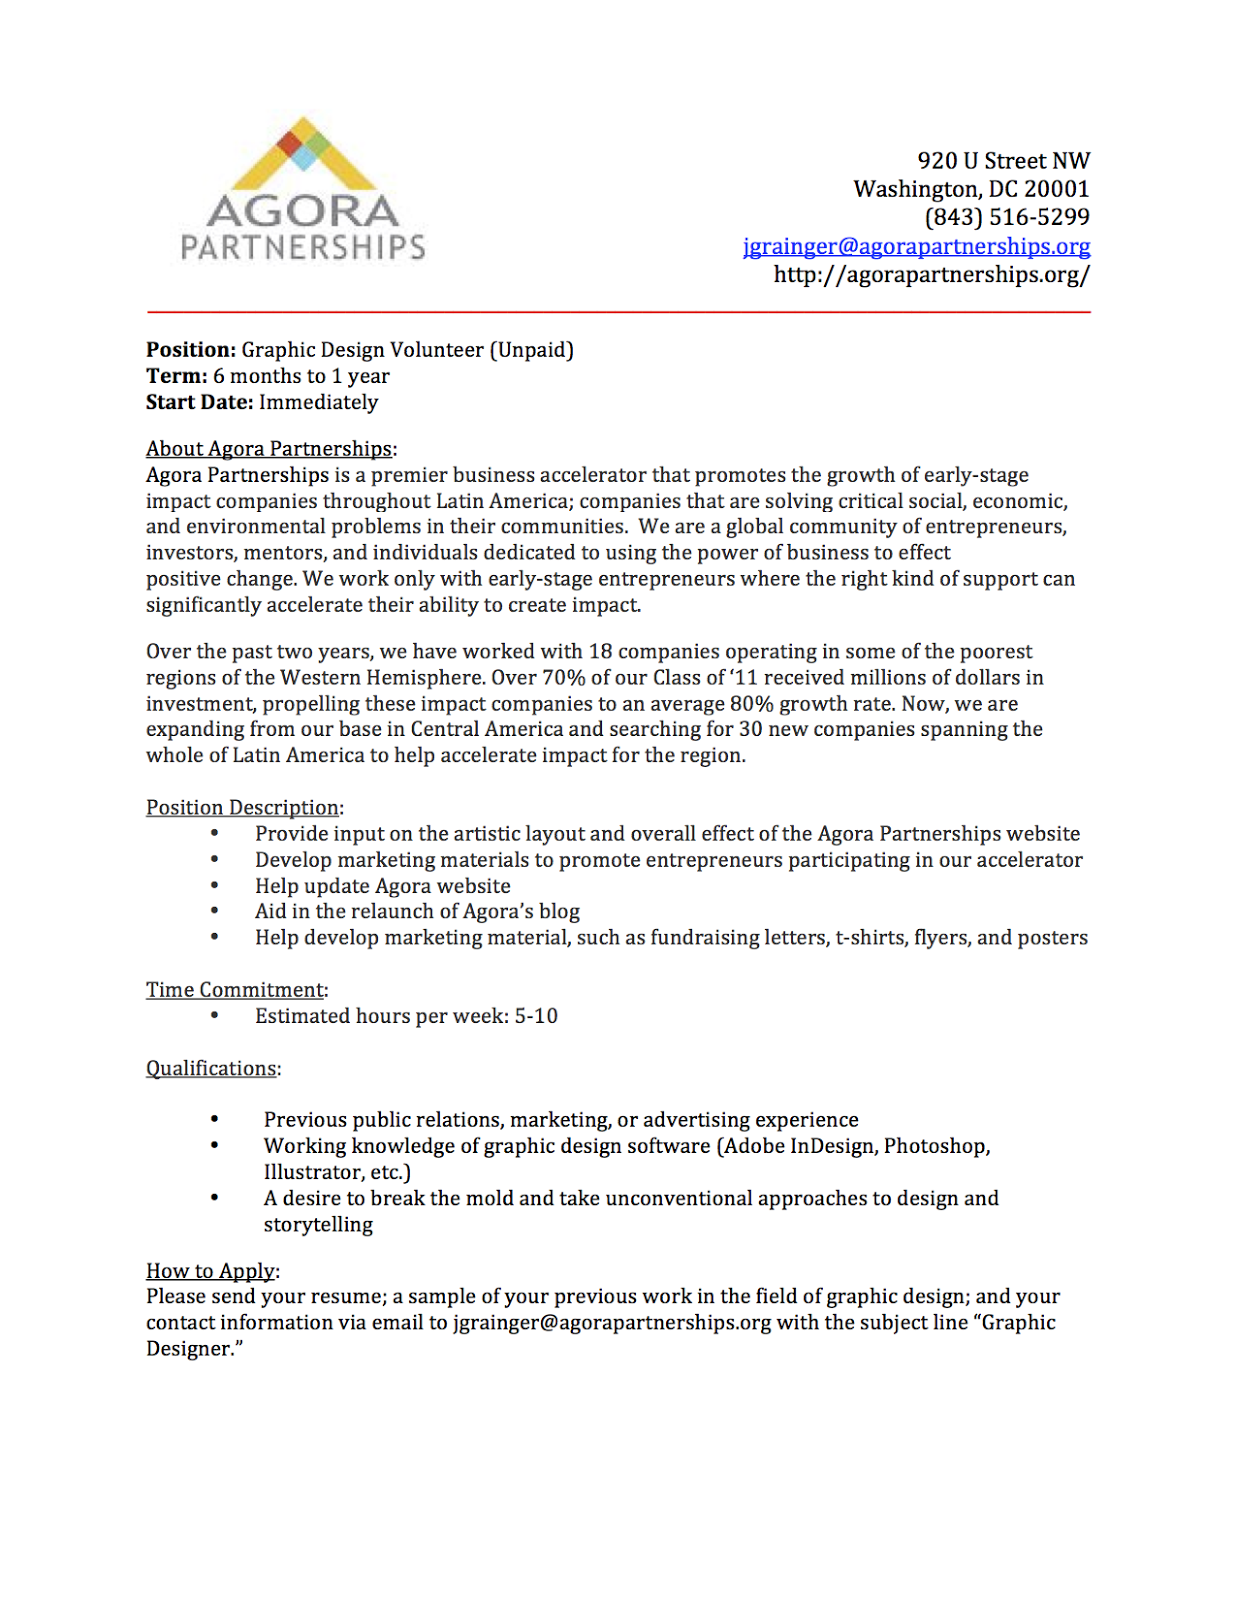 summer internship cover letter samples